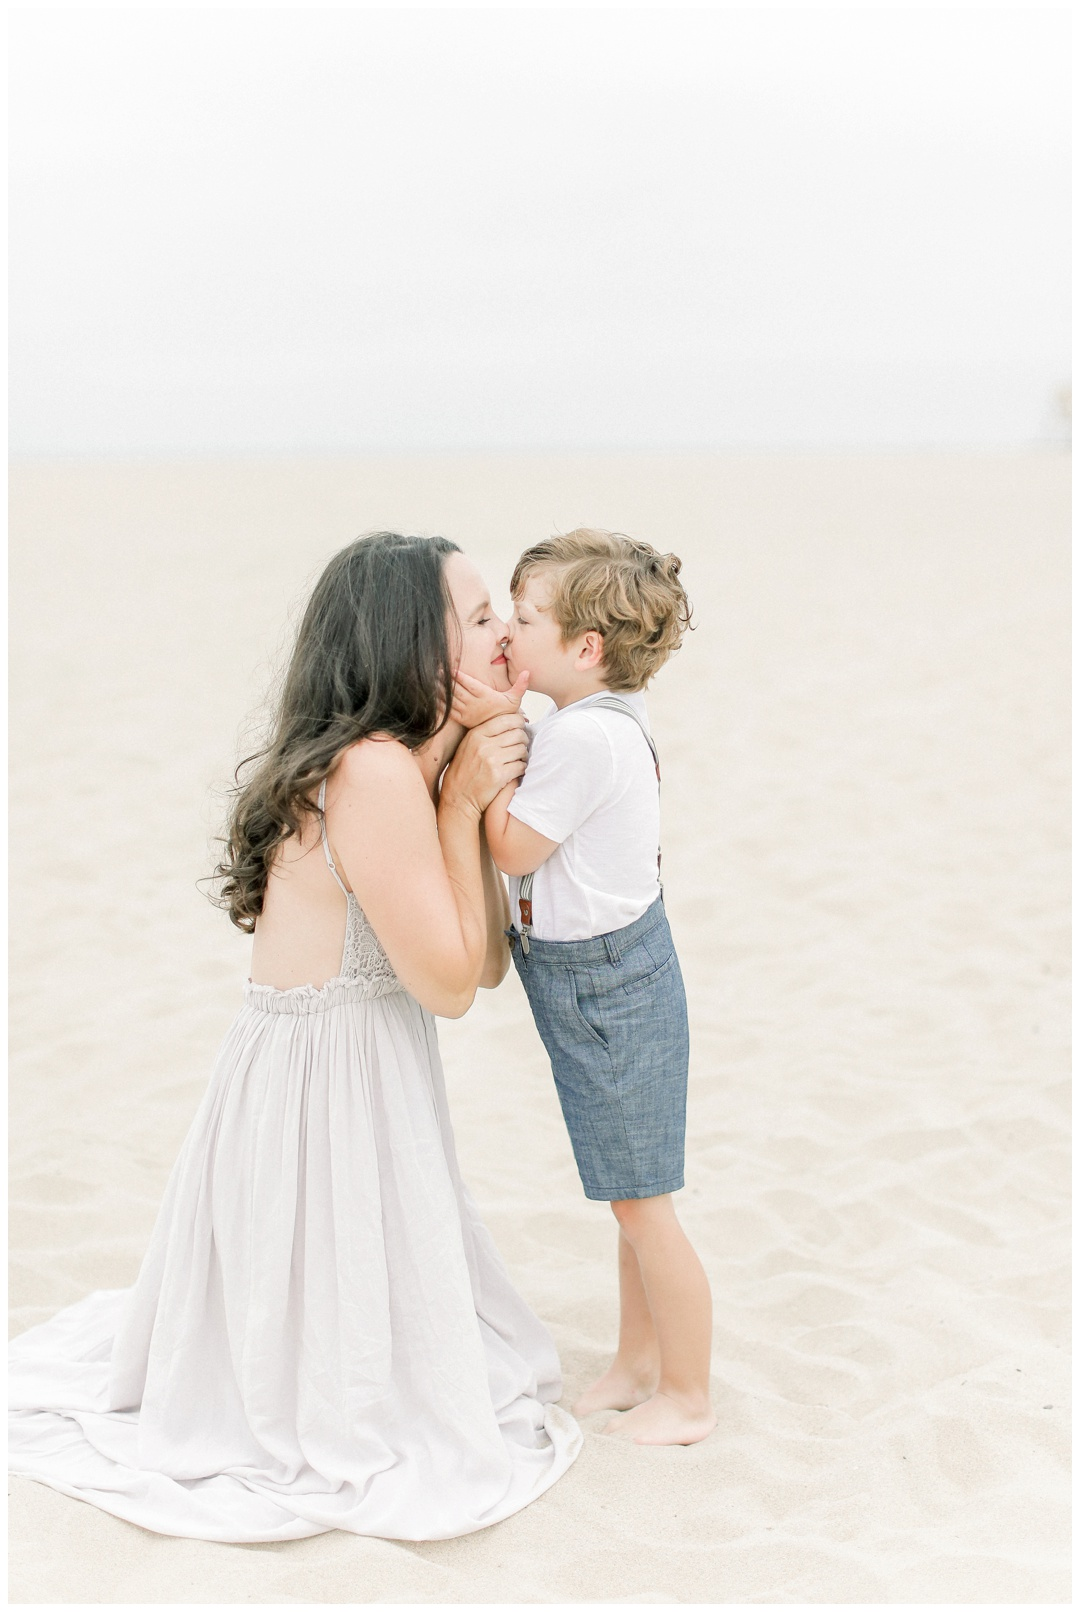 Huntington_Beach_Family_Photographer_The_Wood_Family_Lifestyle_Newport_Beach_Family_Photographer_Orange_County_Newborn_Photography_Cori_Kleckner_Photography_Orange_County_Beach_Photography_Huntington_Beach_Family_Session__1639.jpg